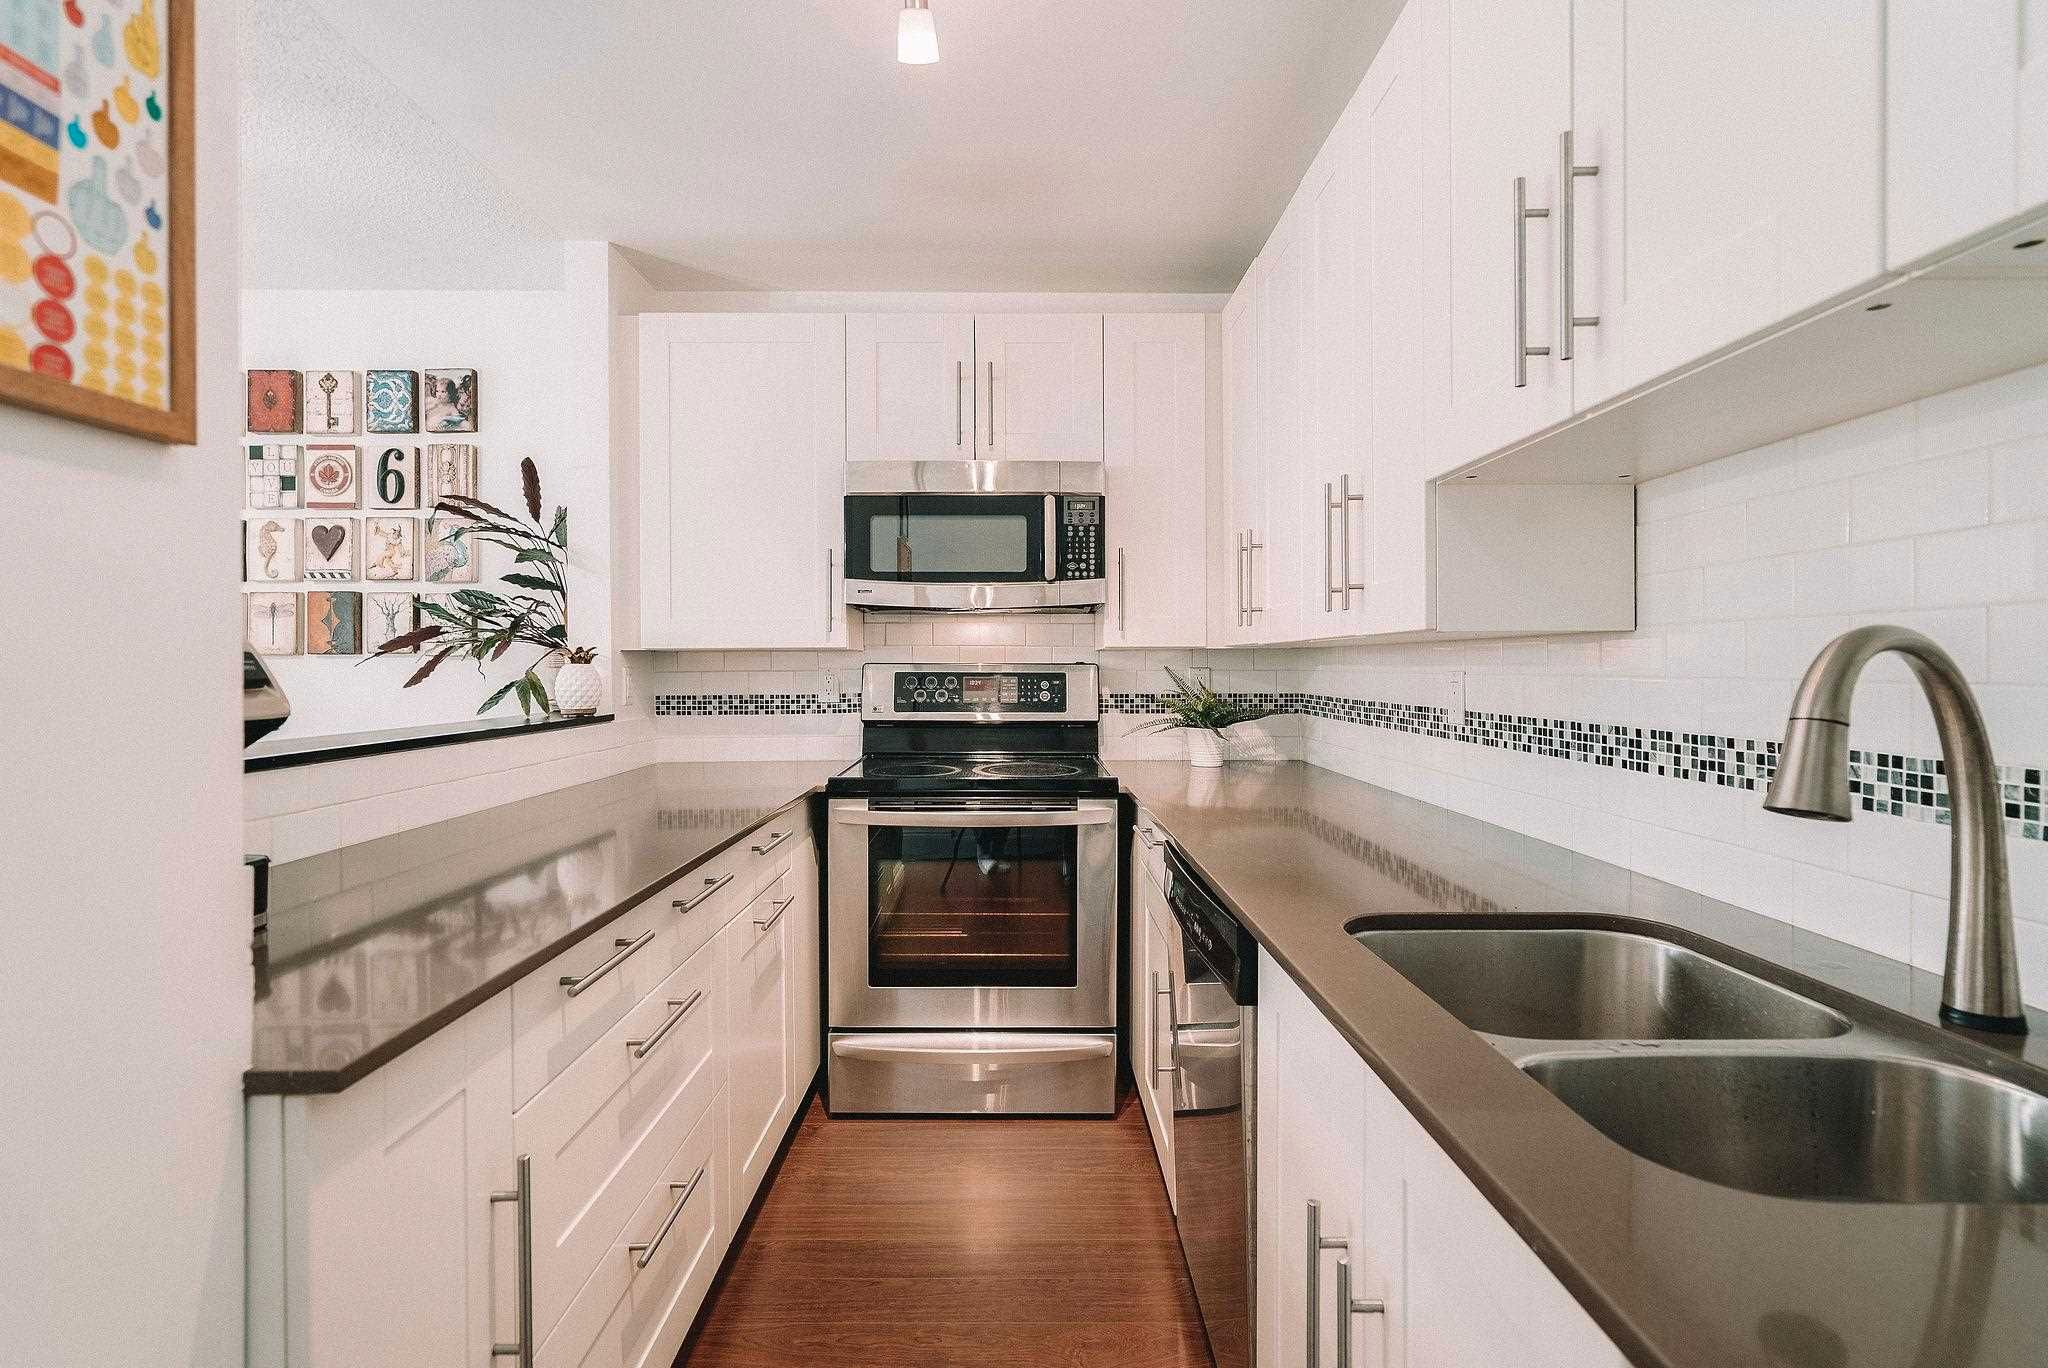 Main Photo: 103 2001 BALSAM Street in Vancouver: Kitsilano Condo for sale (Vancouver West)  : MLS®# R2601345